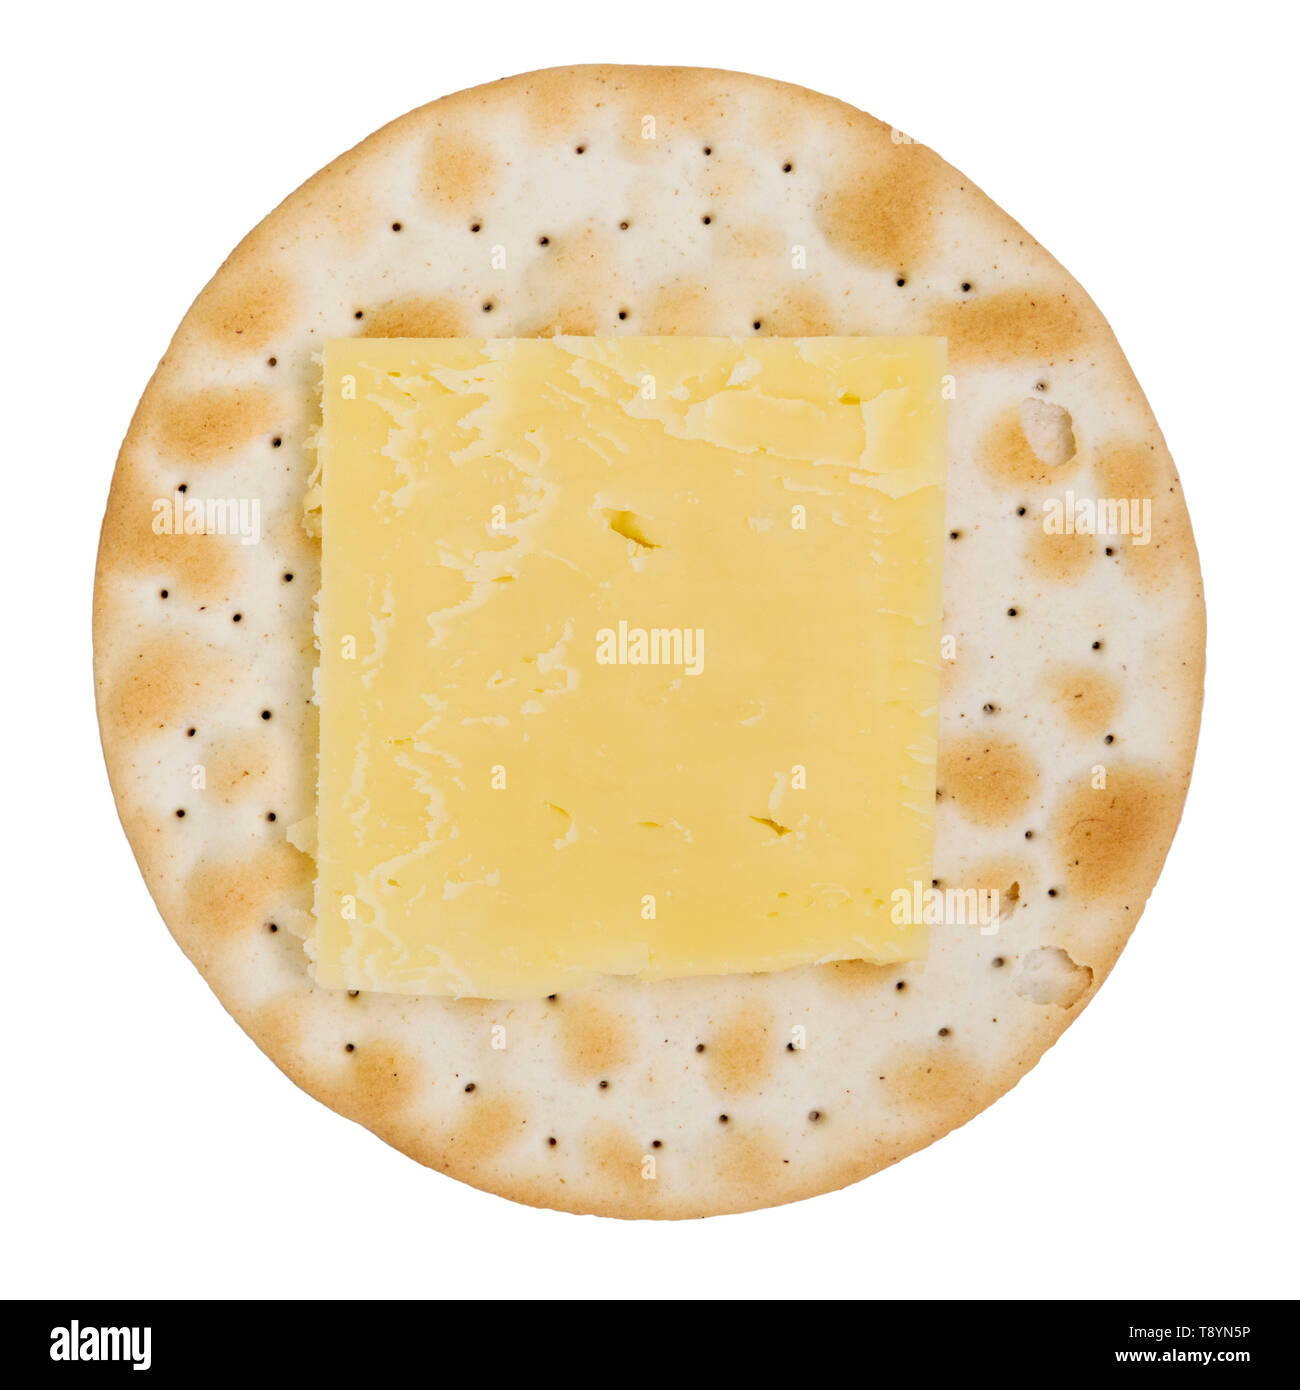 Cheddar cheese on a round cracker or biscuit, UK. Carrs table water biscuit shot from above and cut out or isolated on a white background. - Stock Image